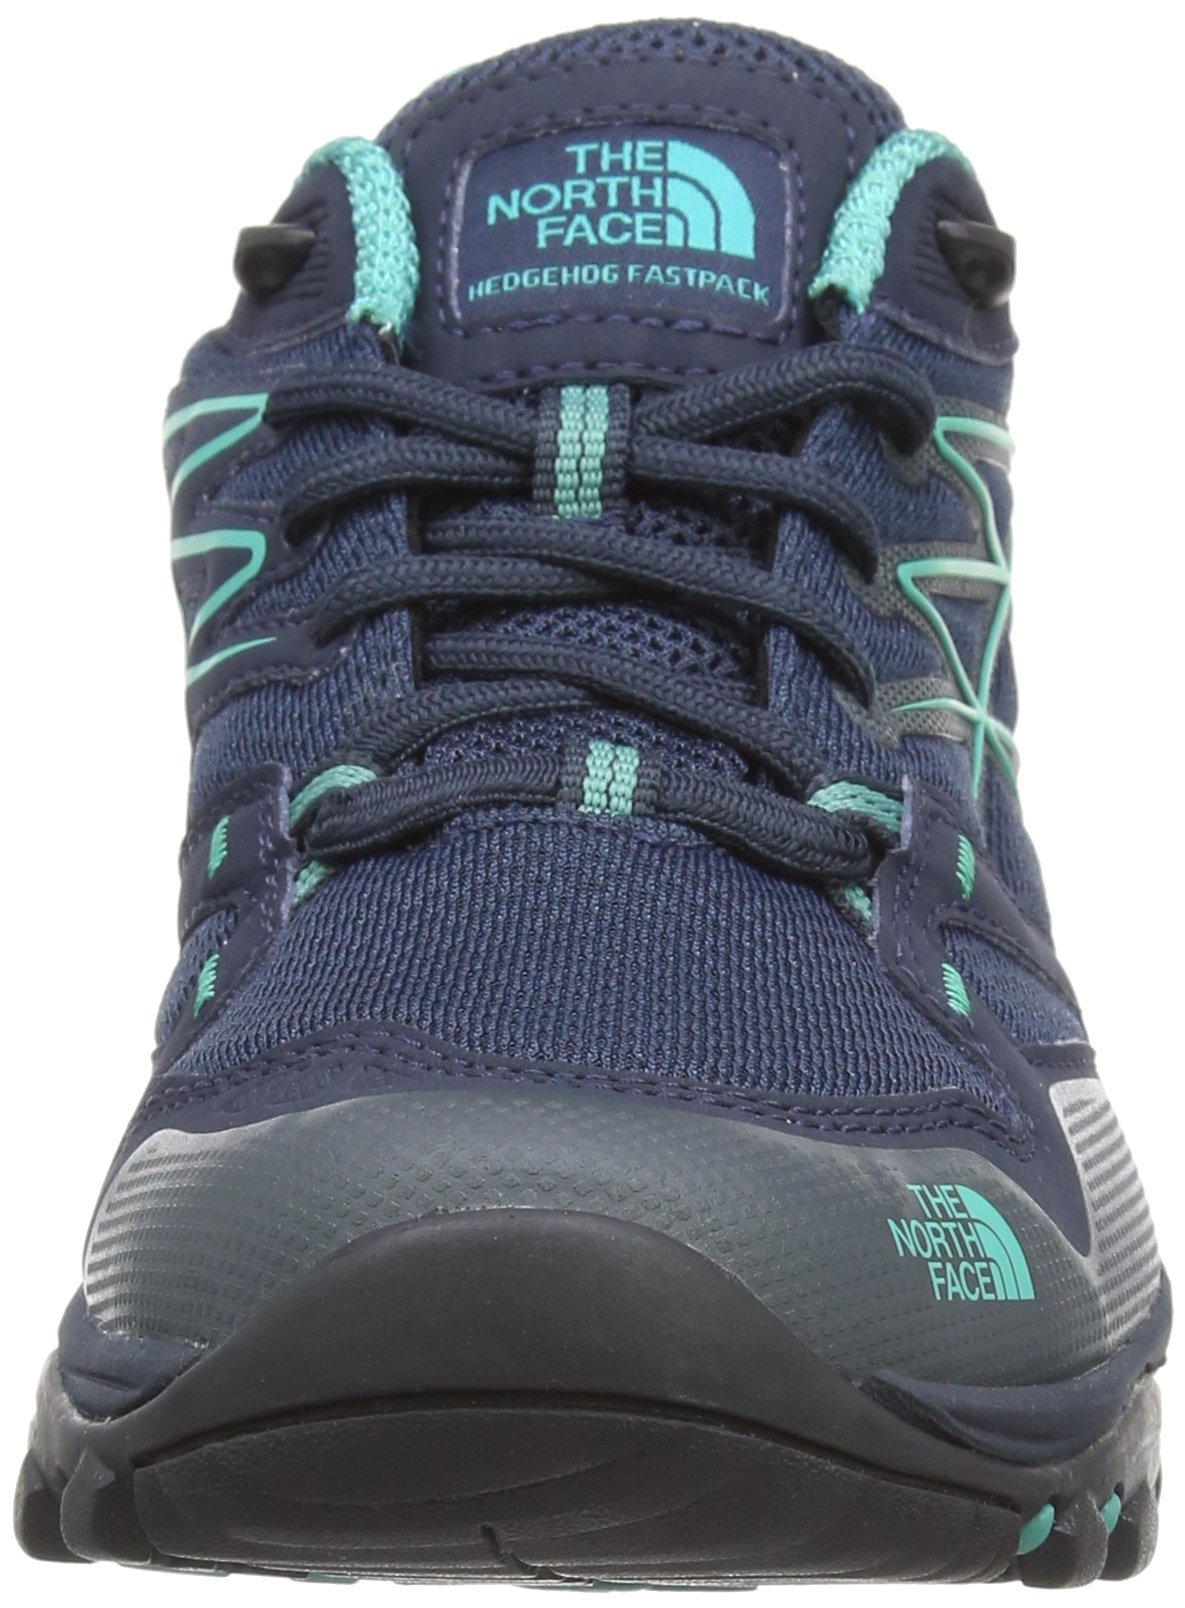 819OTRY6H L - THE NORTH FACE Women's Hedgehog Fastpack Gore-tex (EU) Low Rise Hiking Boots